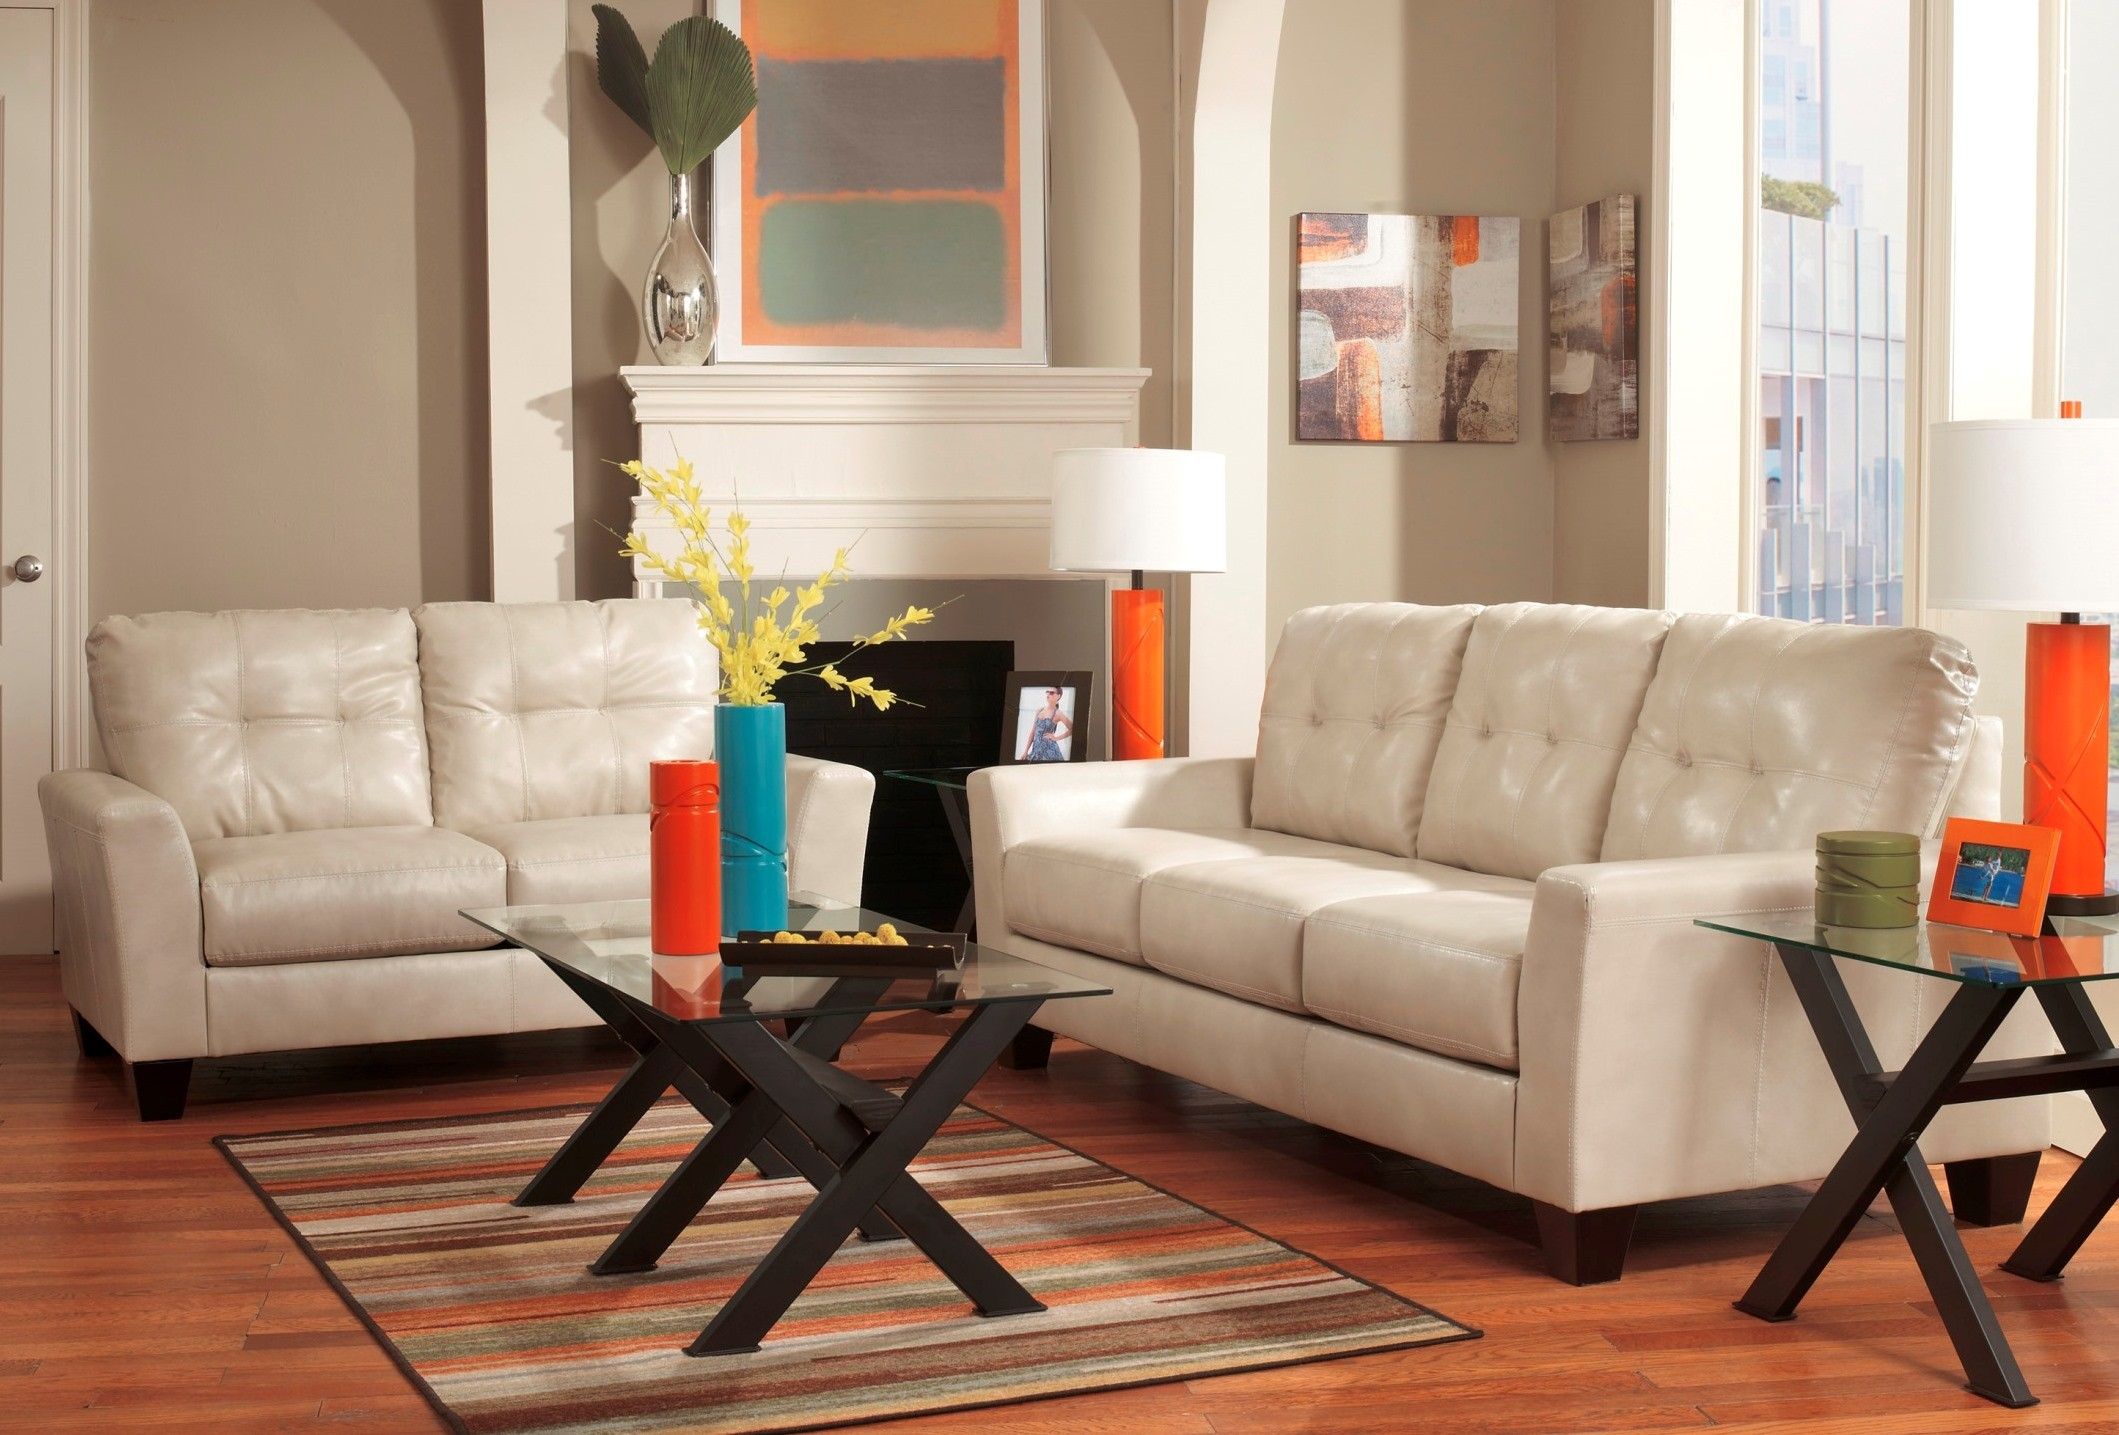 Paulie durablend taupe living room set from ashley 27000 for Durable living room furniture